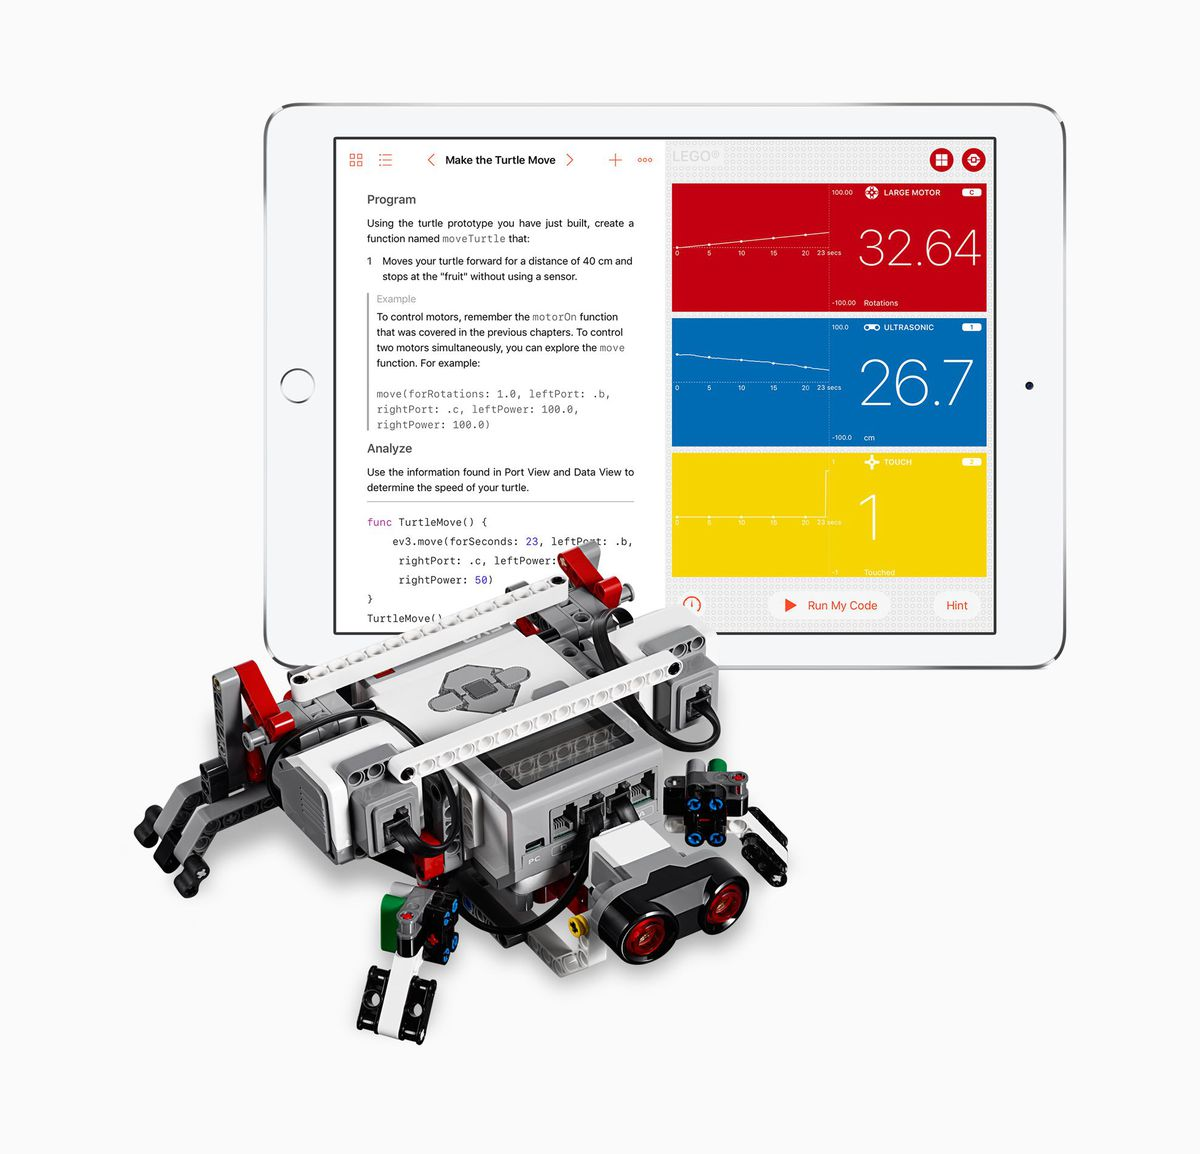 A LEGO Mindstorms EV3 robot with the Swift Playgrounds programming interface.